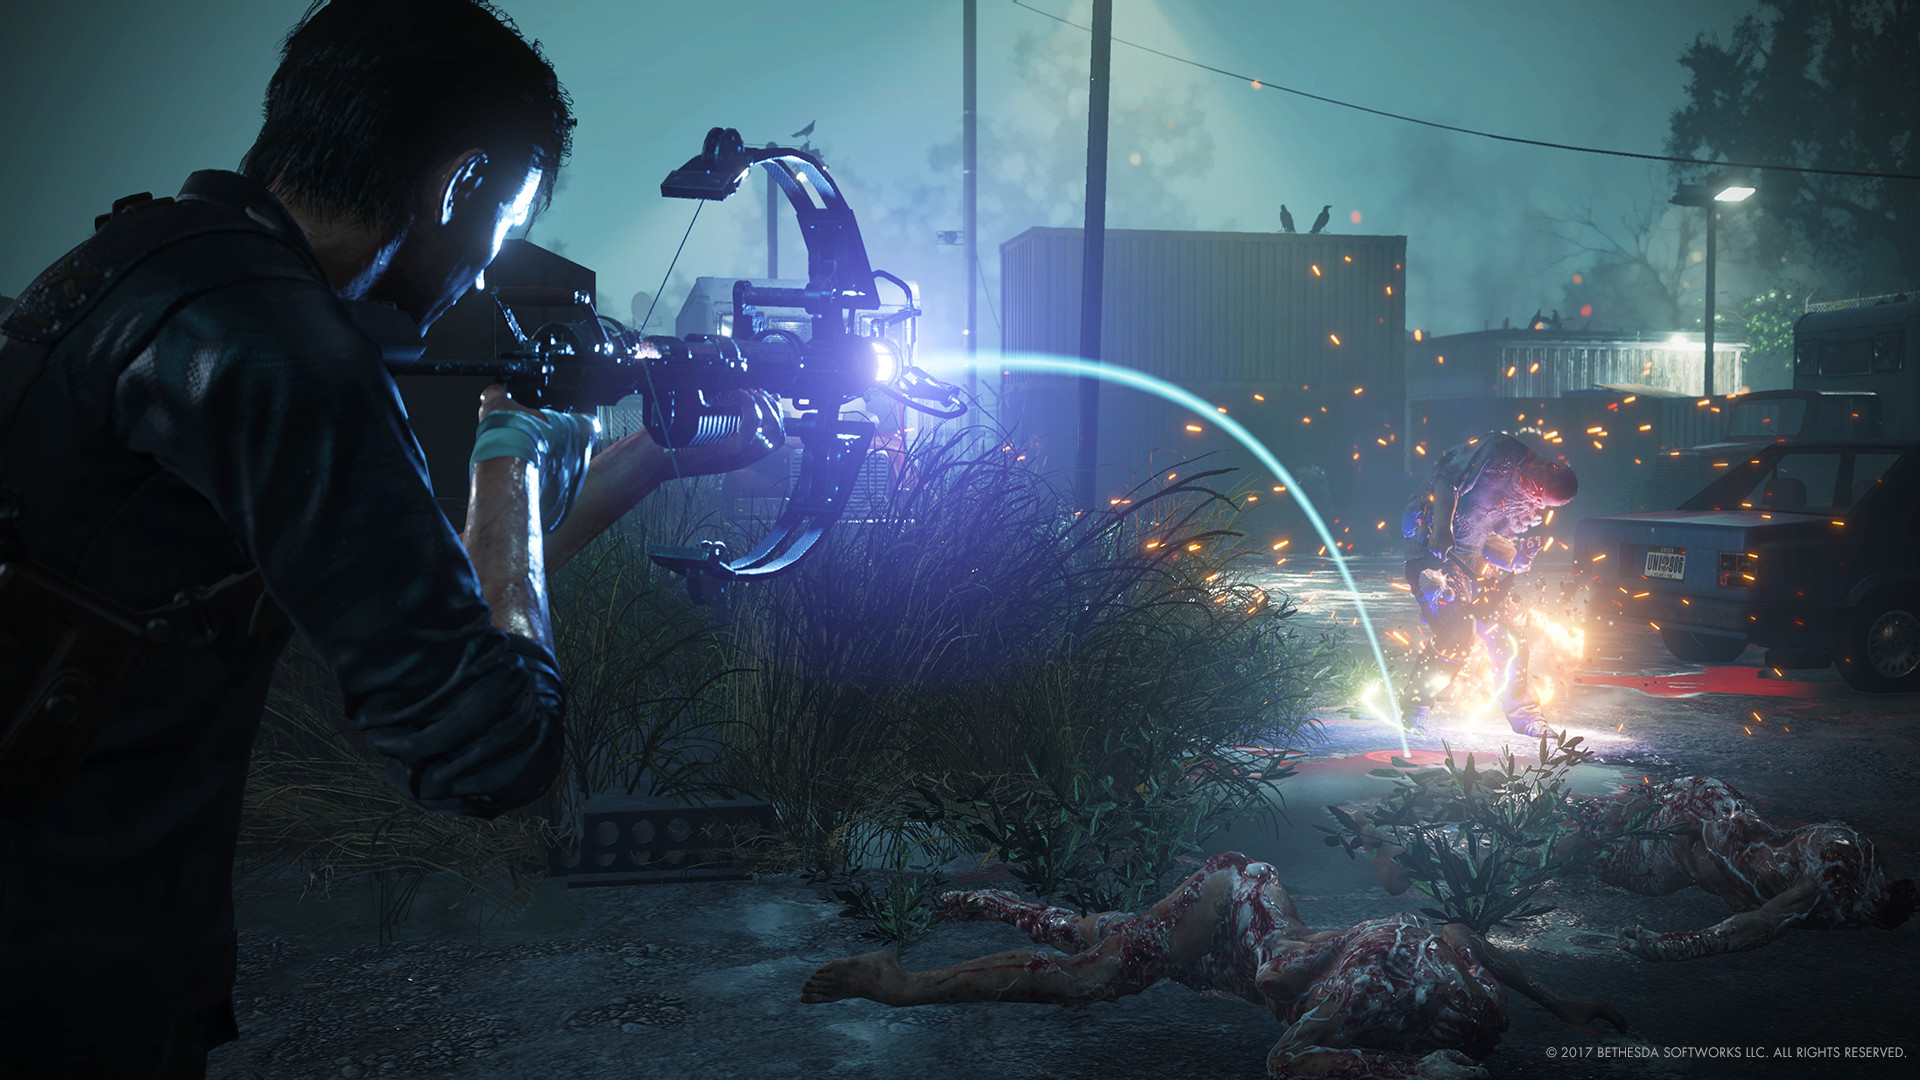 download the evil within 2 included all dlcs repack by corepack singlelink iso rar part kumpulbagi diskokosmiko